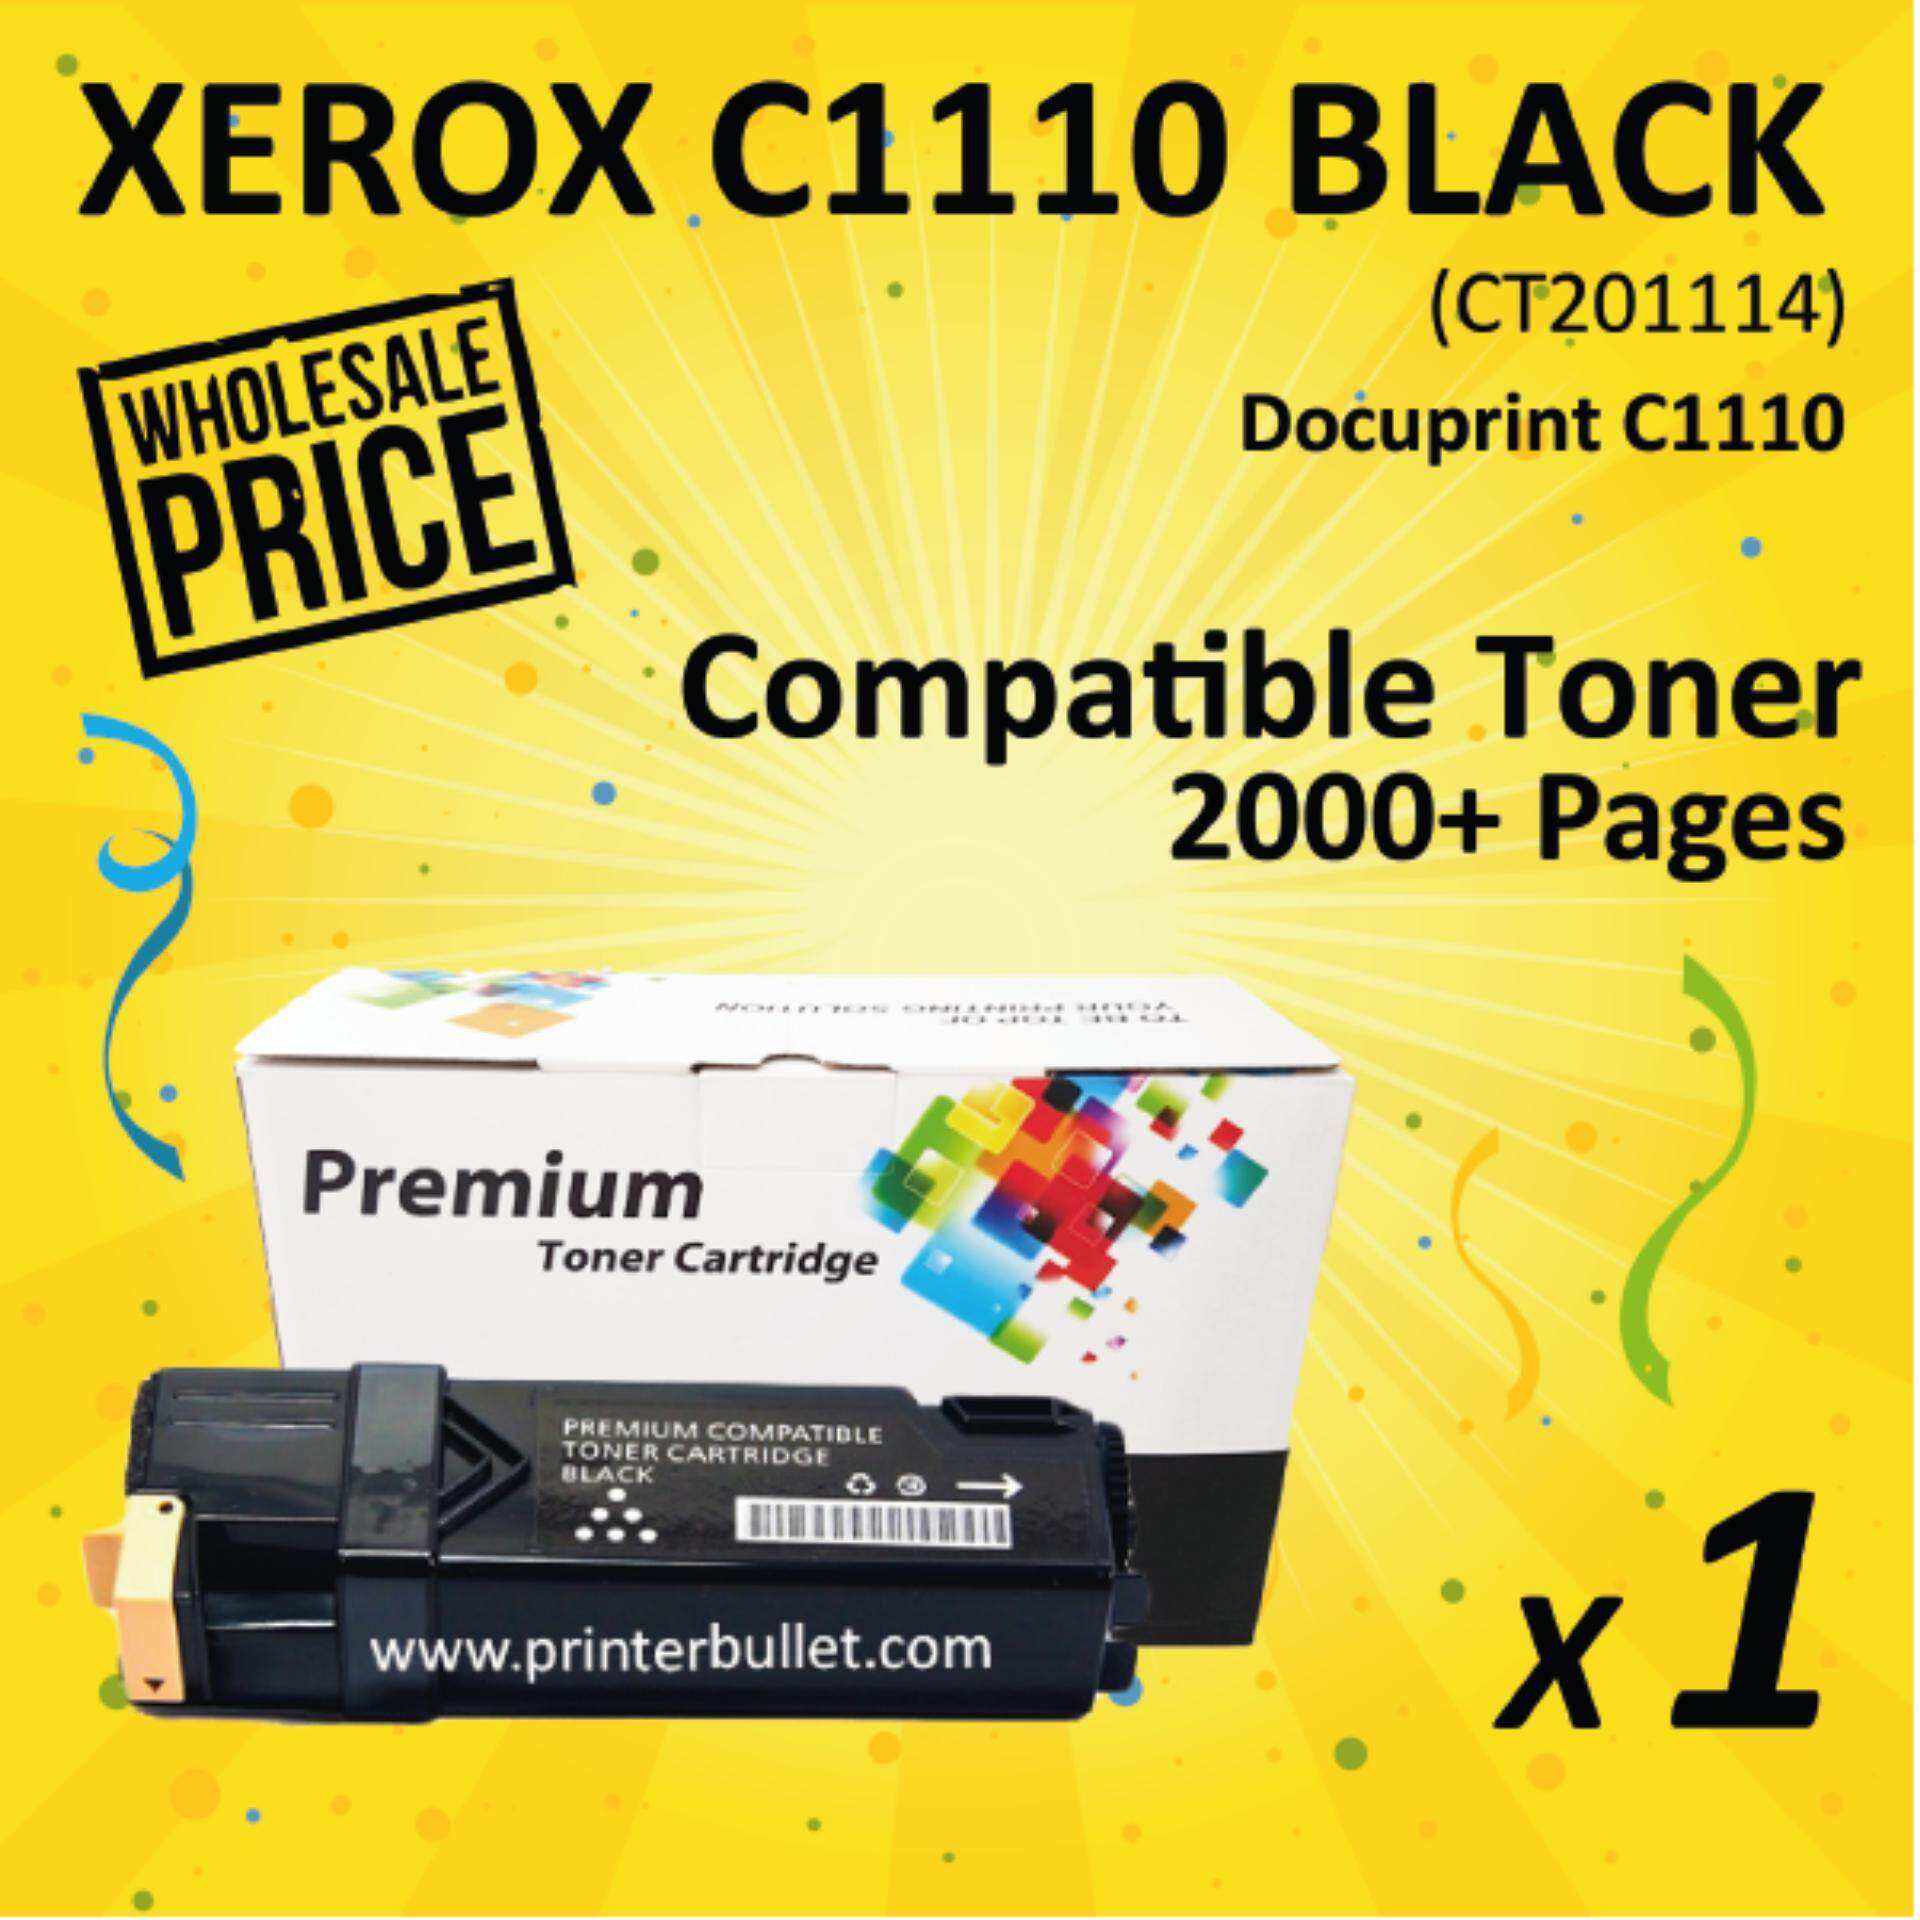 Fuji Xerox Docuprint C1110 / C1110B Black Compatible Colour Laser Toner Cartridge